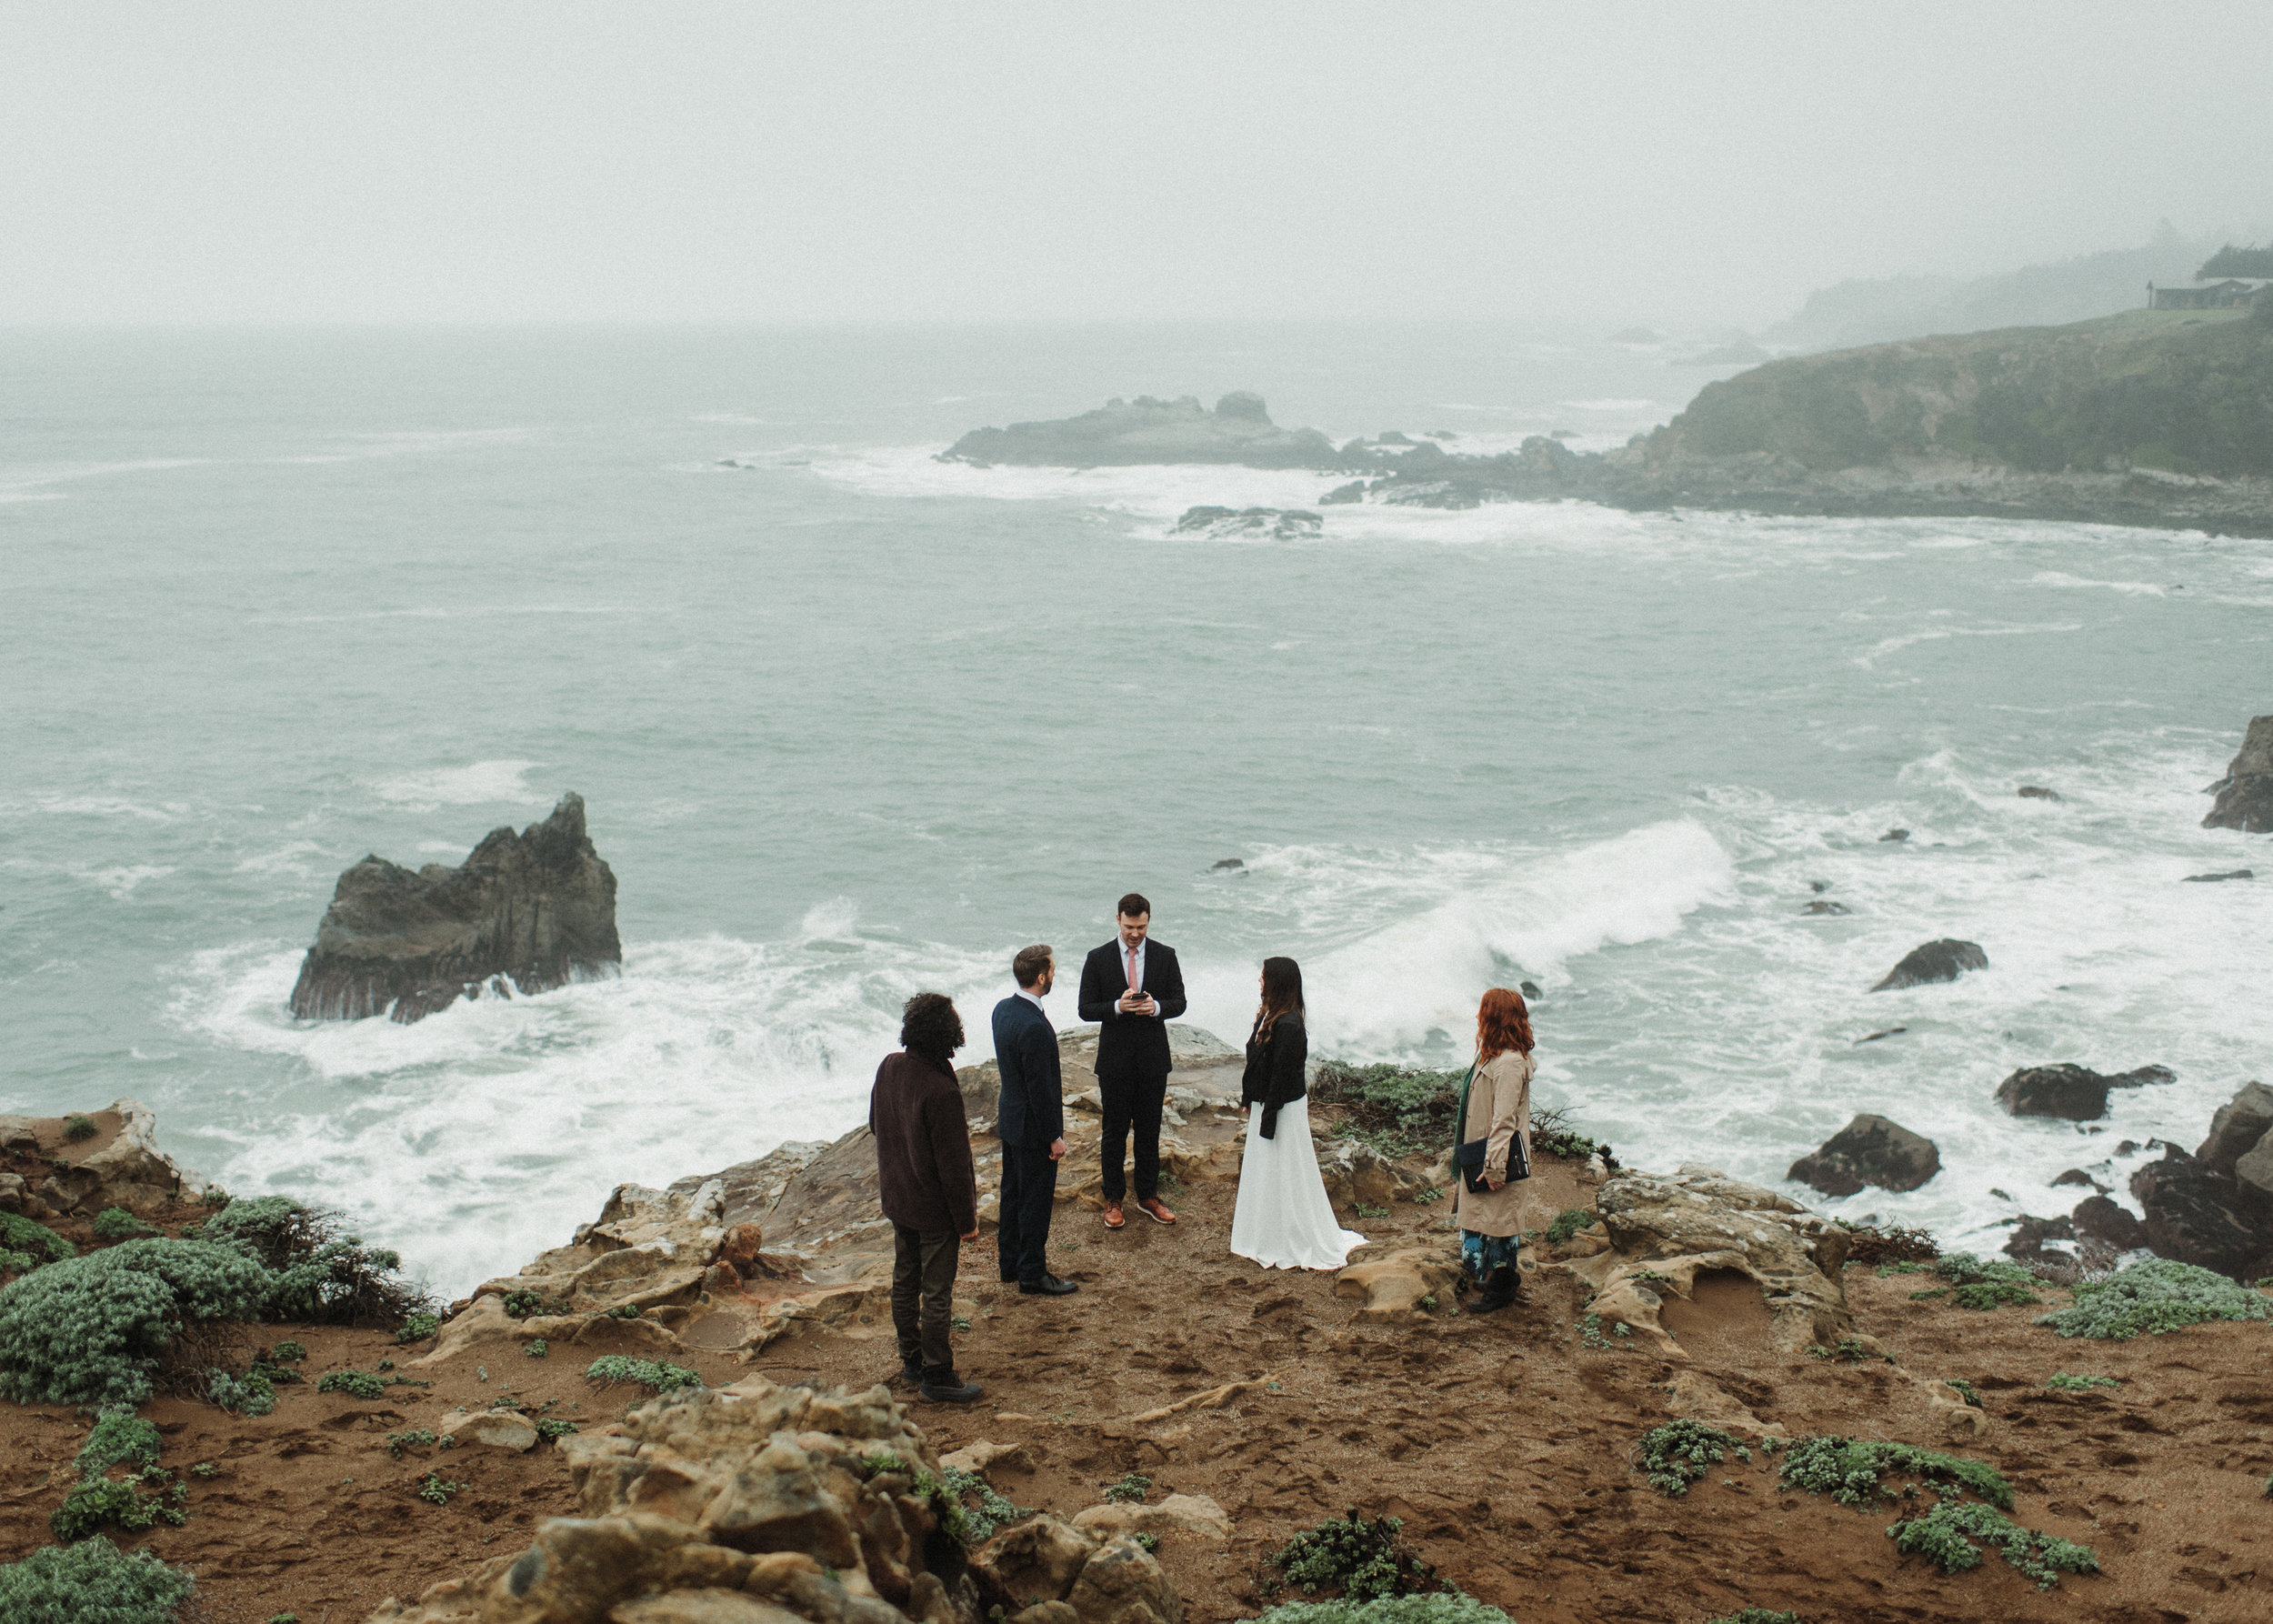 Elopement Collection // $1400 - Two hours of Photography Coverage200+ Edited PhotosOnline Gallery with high-resolution images to downloadPersonal Print Release